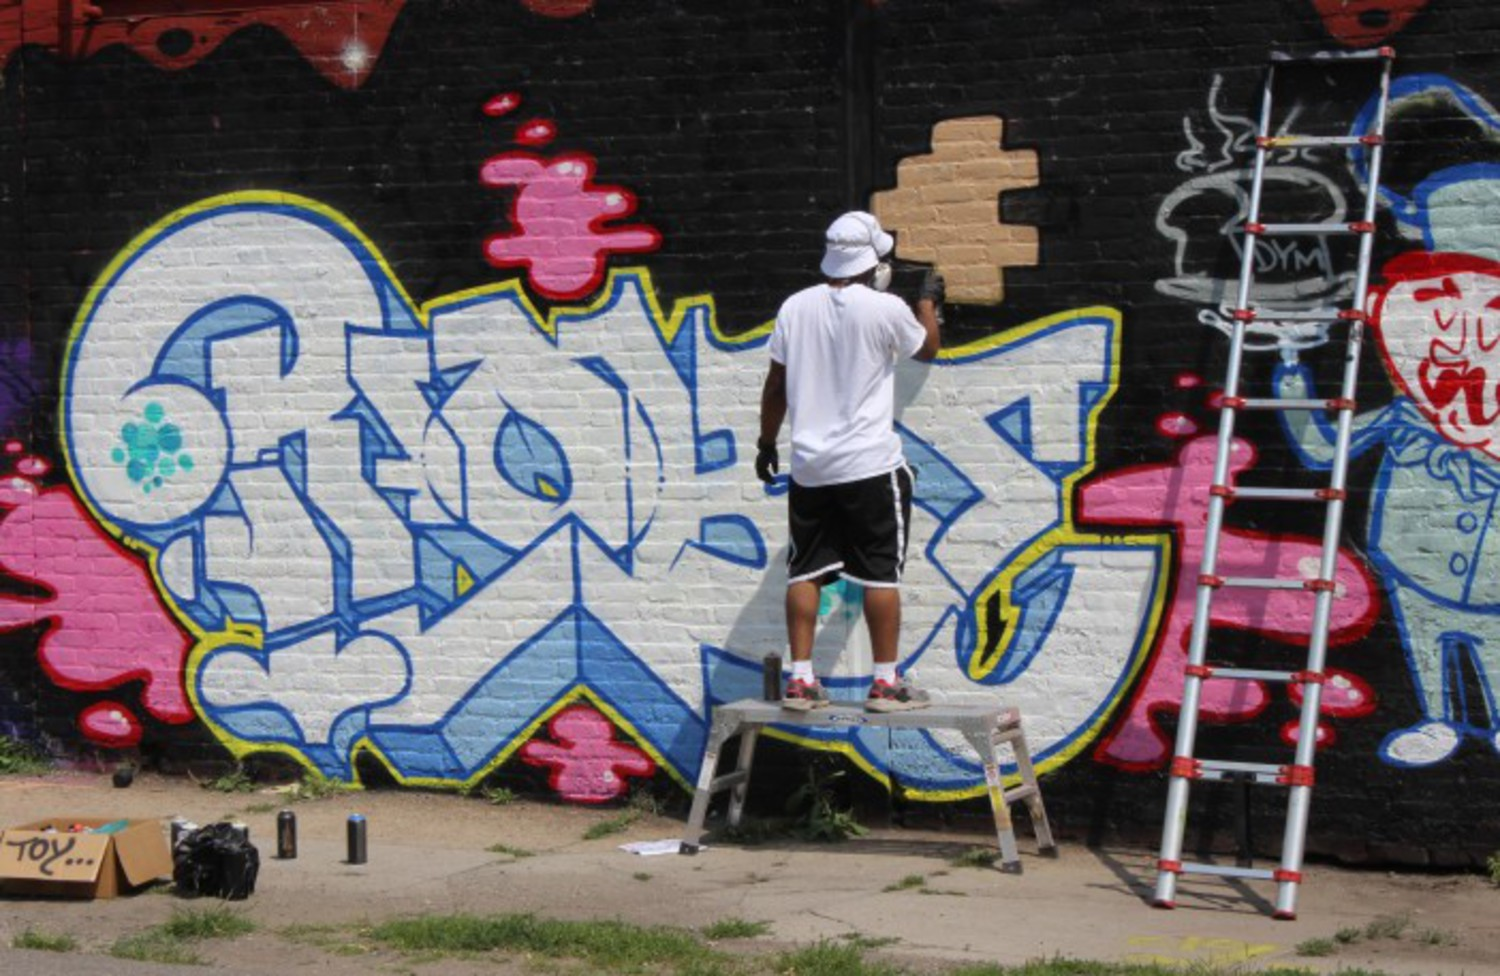 Graffiti artist working on a commissioned piece.